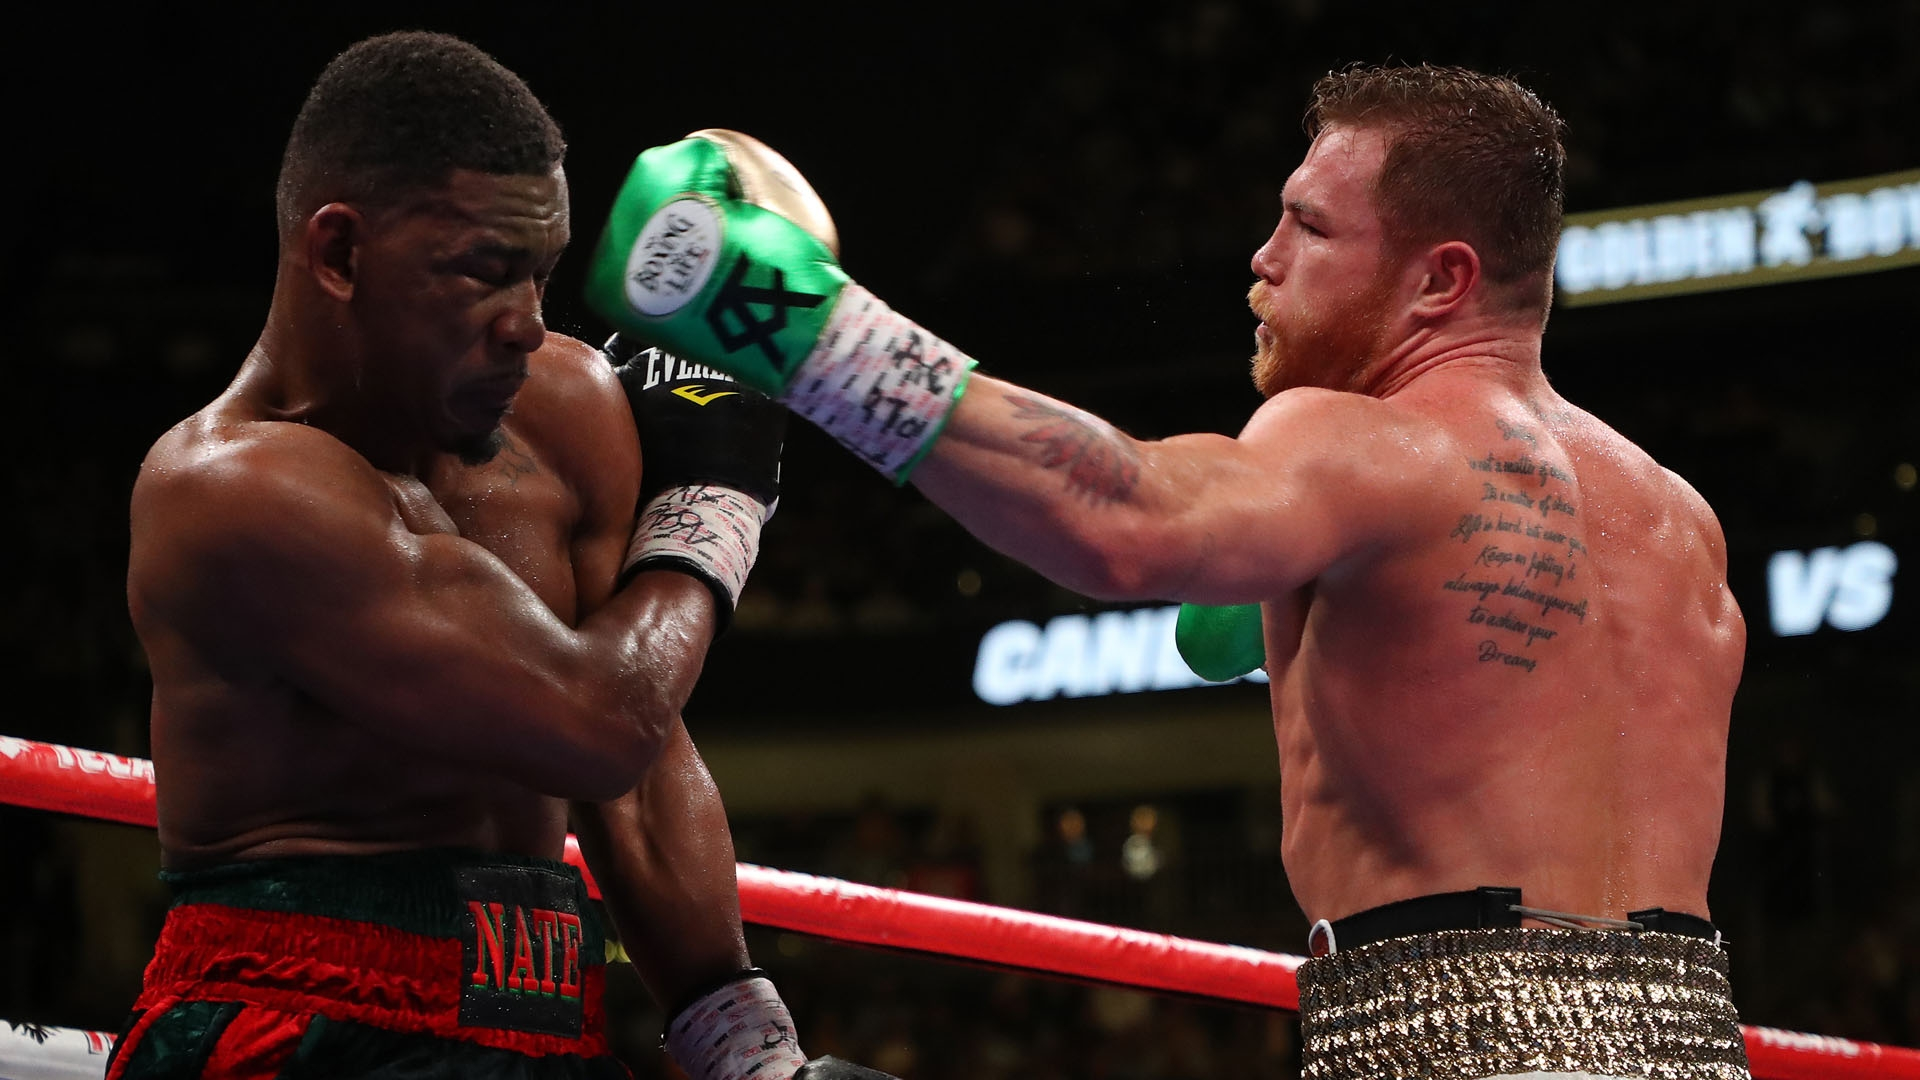 daniel jacobs left and canelo alvarez 7pgvwxqi3swp1lu90slytd2yd 1 - Canelo Alvarez reaches agreement to part ways with Golden Boy Promotions, DAZN